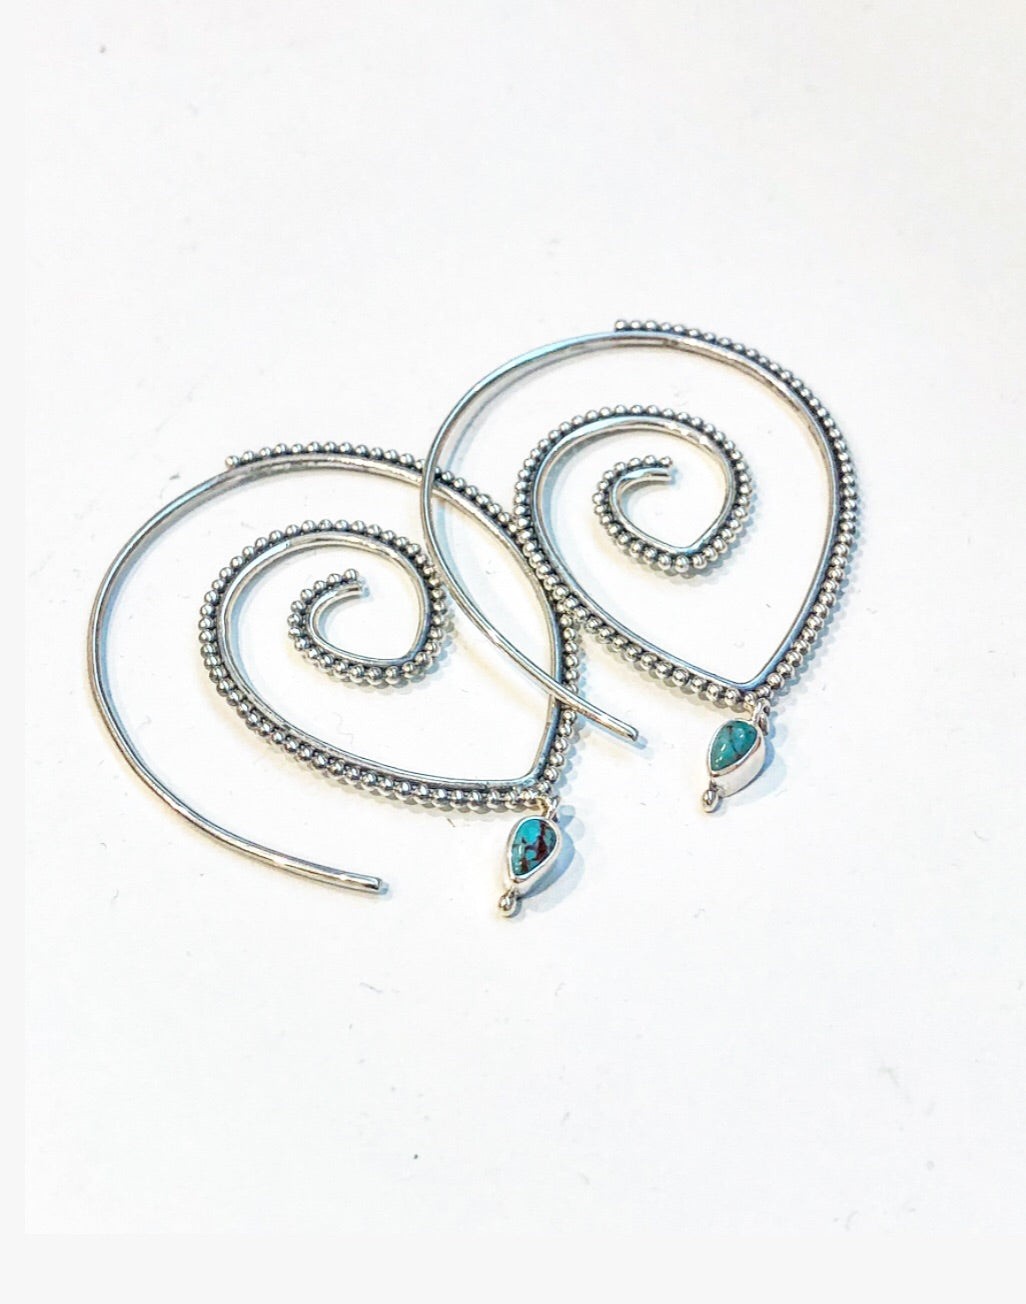 Tear drop turquoise sterling silver earring